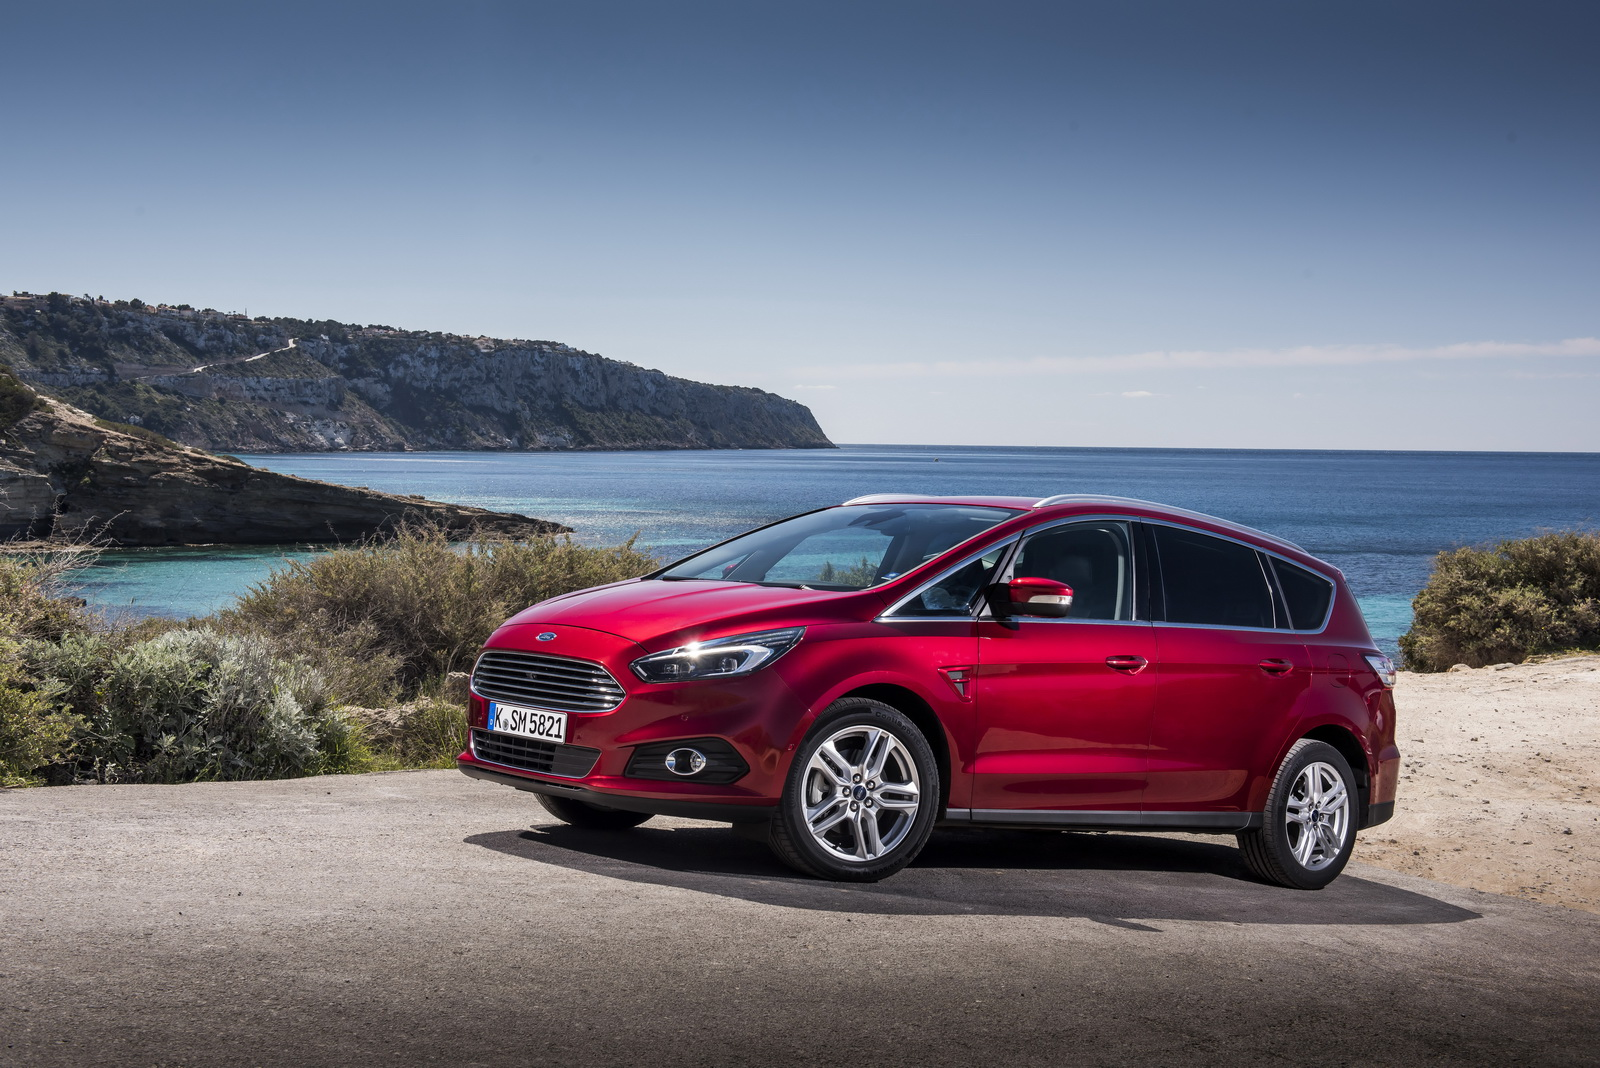 2016 Ford s max photo - 3